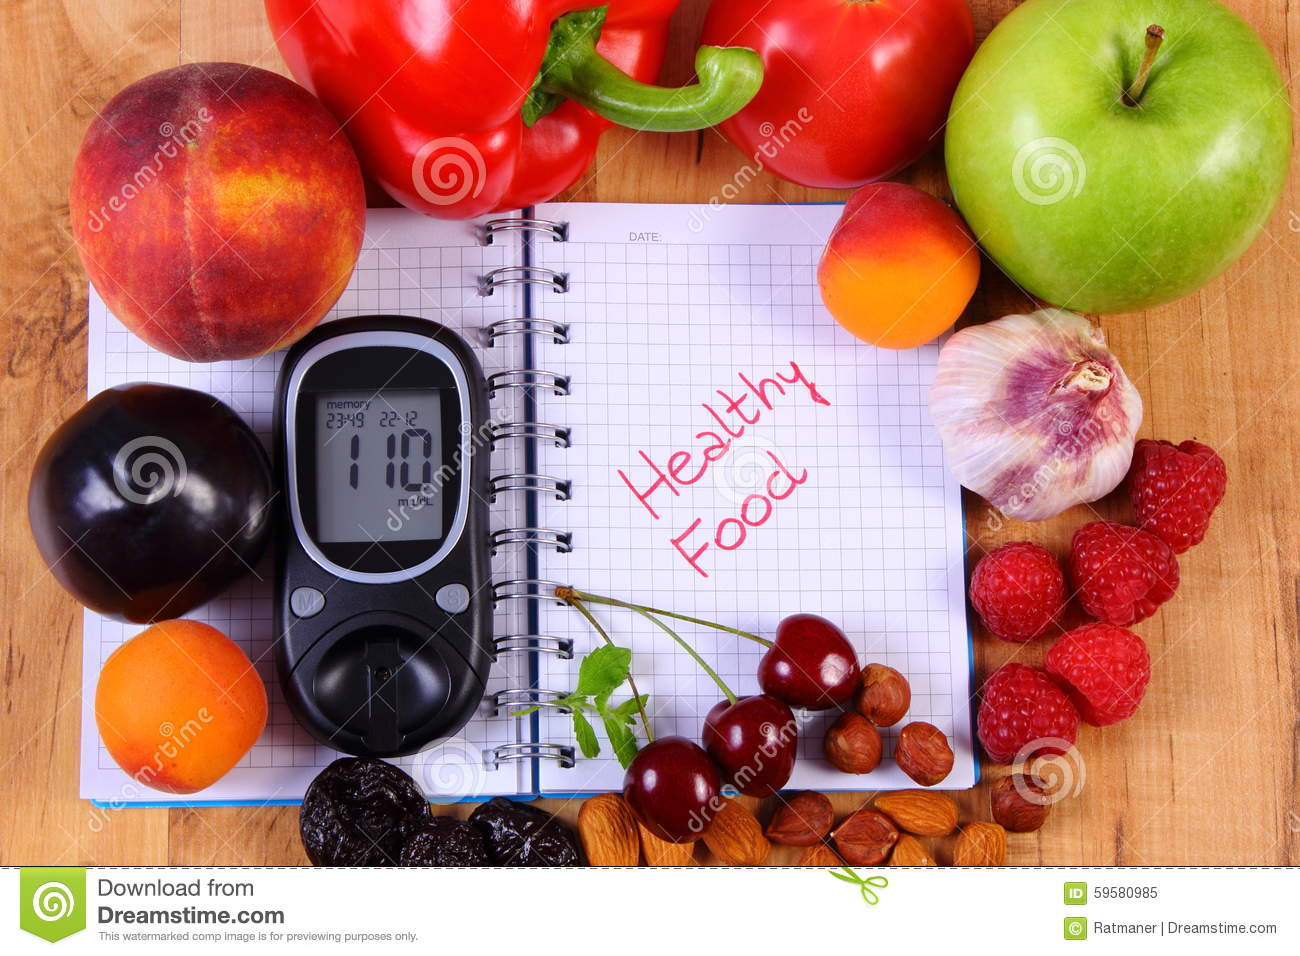 Fruits And Vegetables With Glucometer And Notebook For Notes